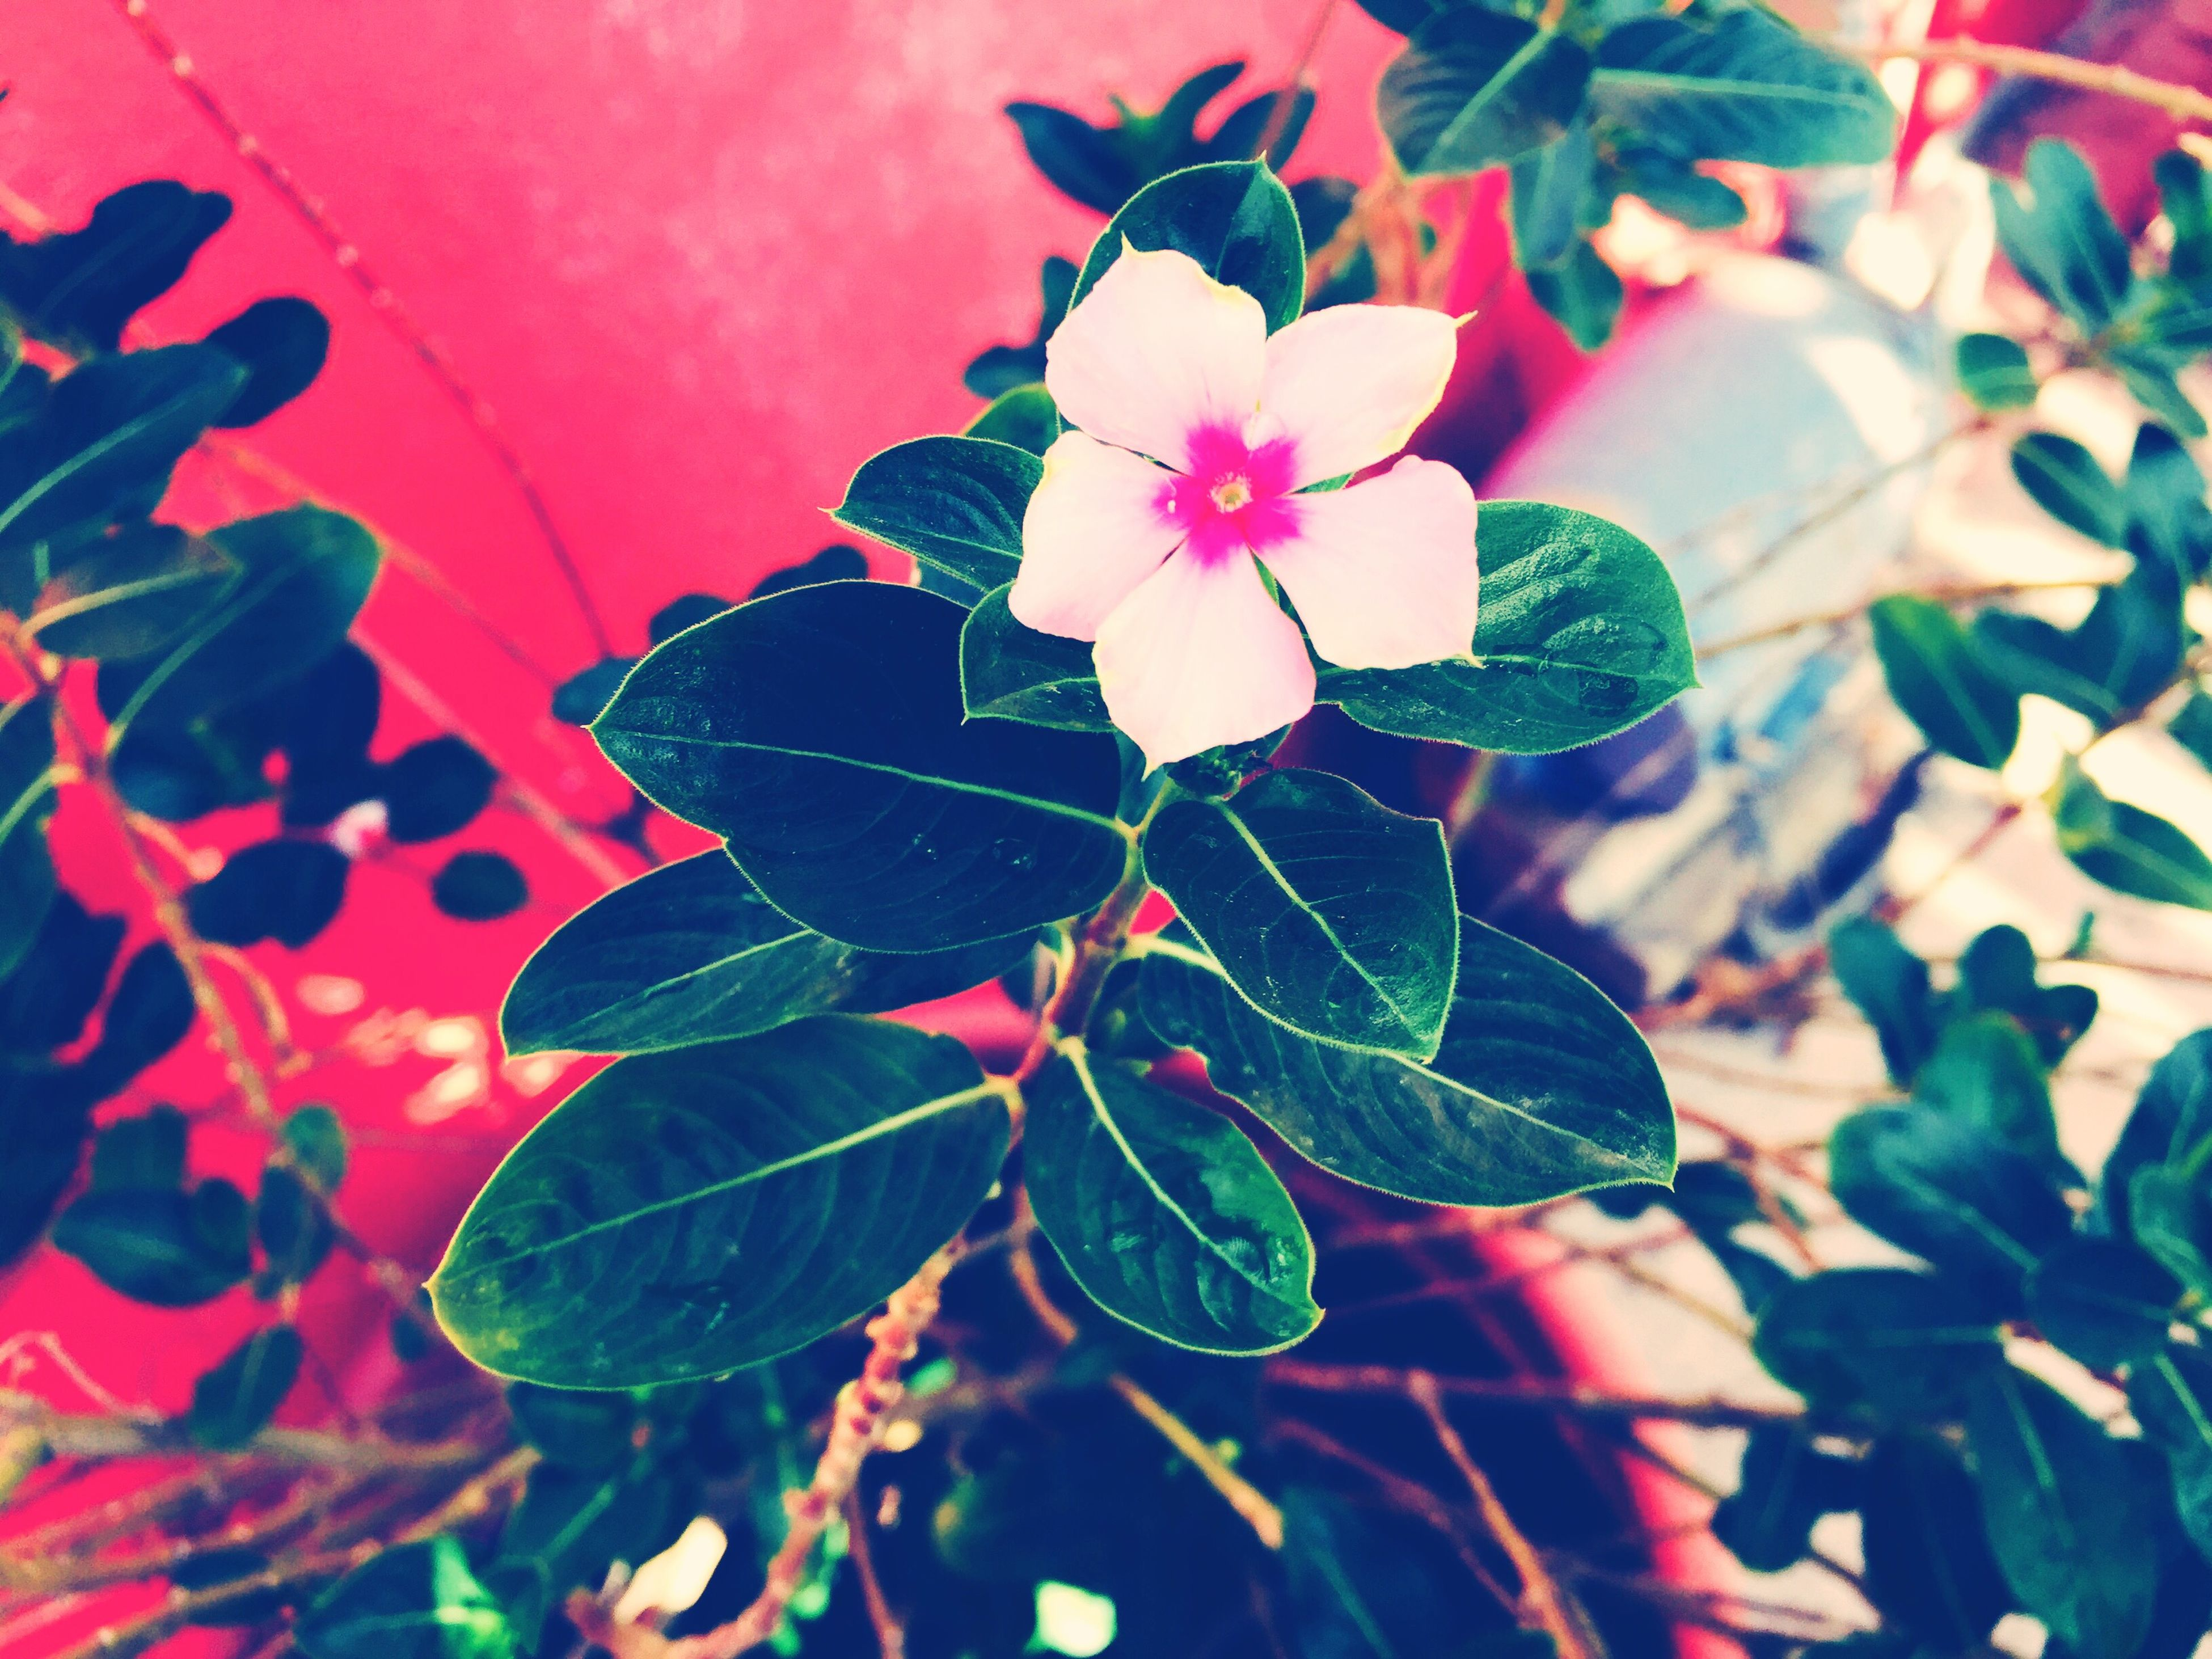 leaf, flower, growth, fragility, freshness, petal, plant, beauty in nature, nature, close-up, pink color, flower head, green color, blooming, leaf vein, in bloom, day, no people, outdoors, stem